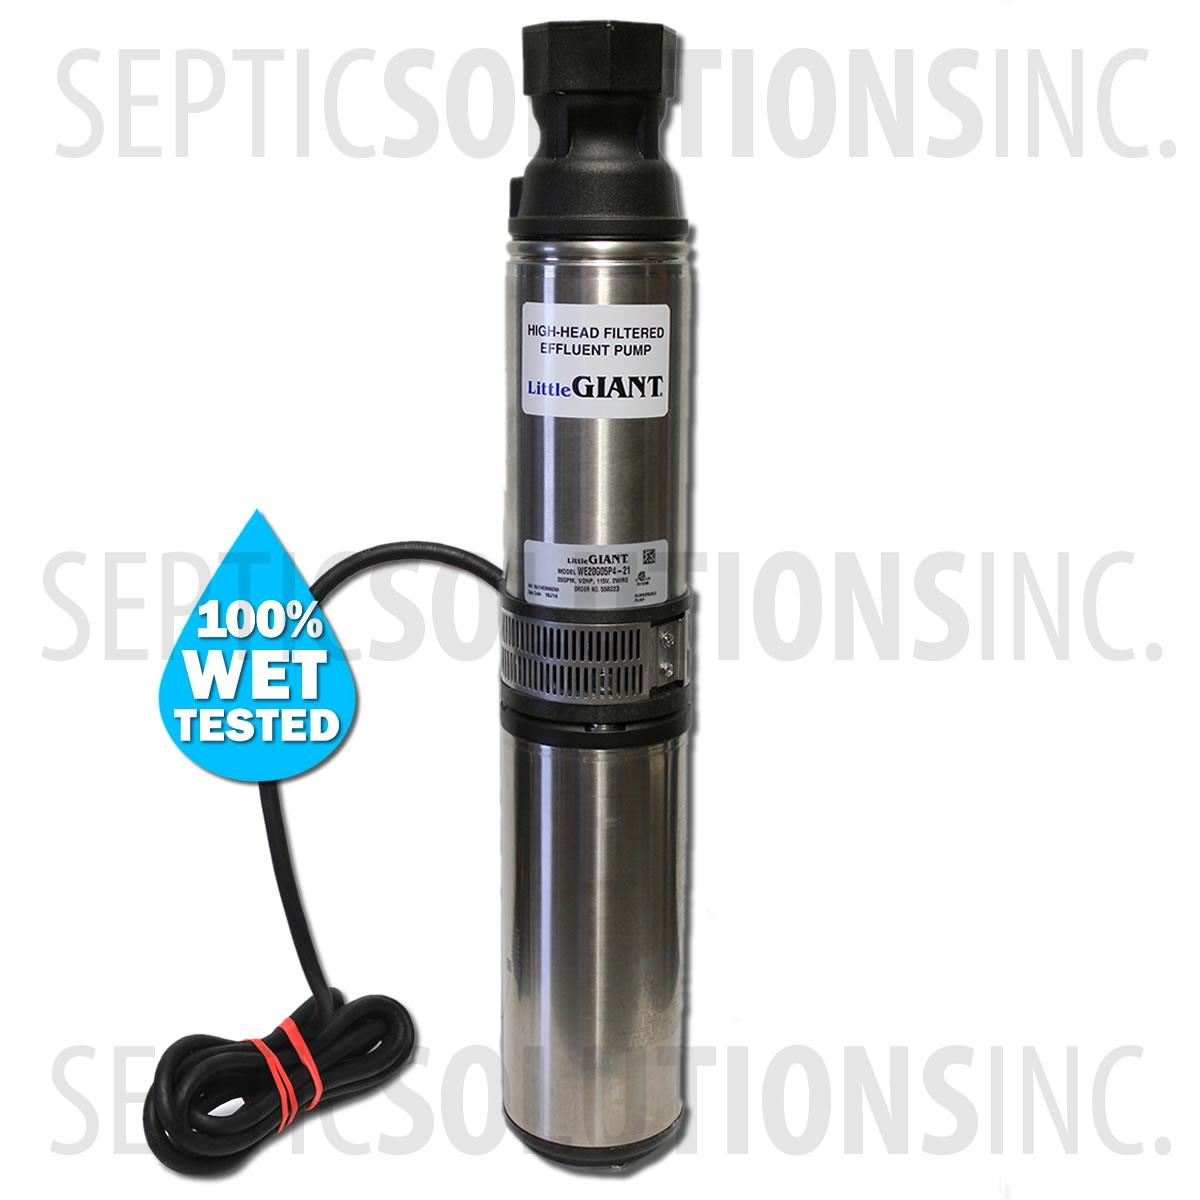 franklin electric little giant we10g05p4 21 submersible high head rh septicsolutions com